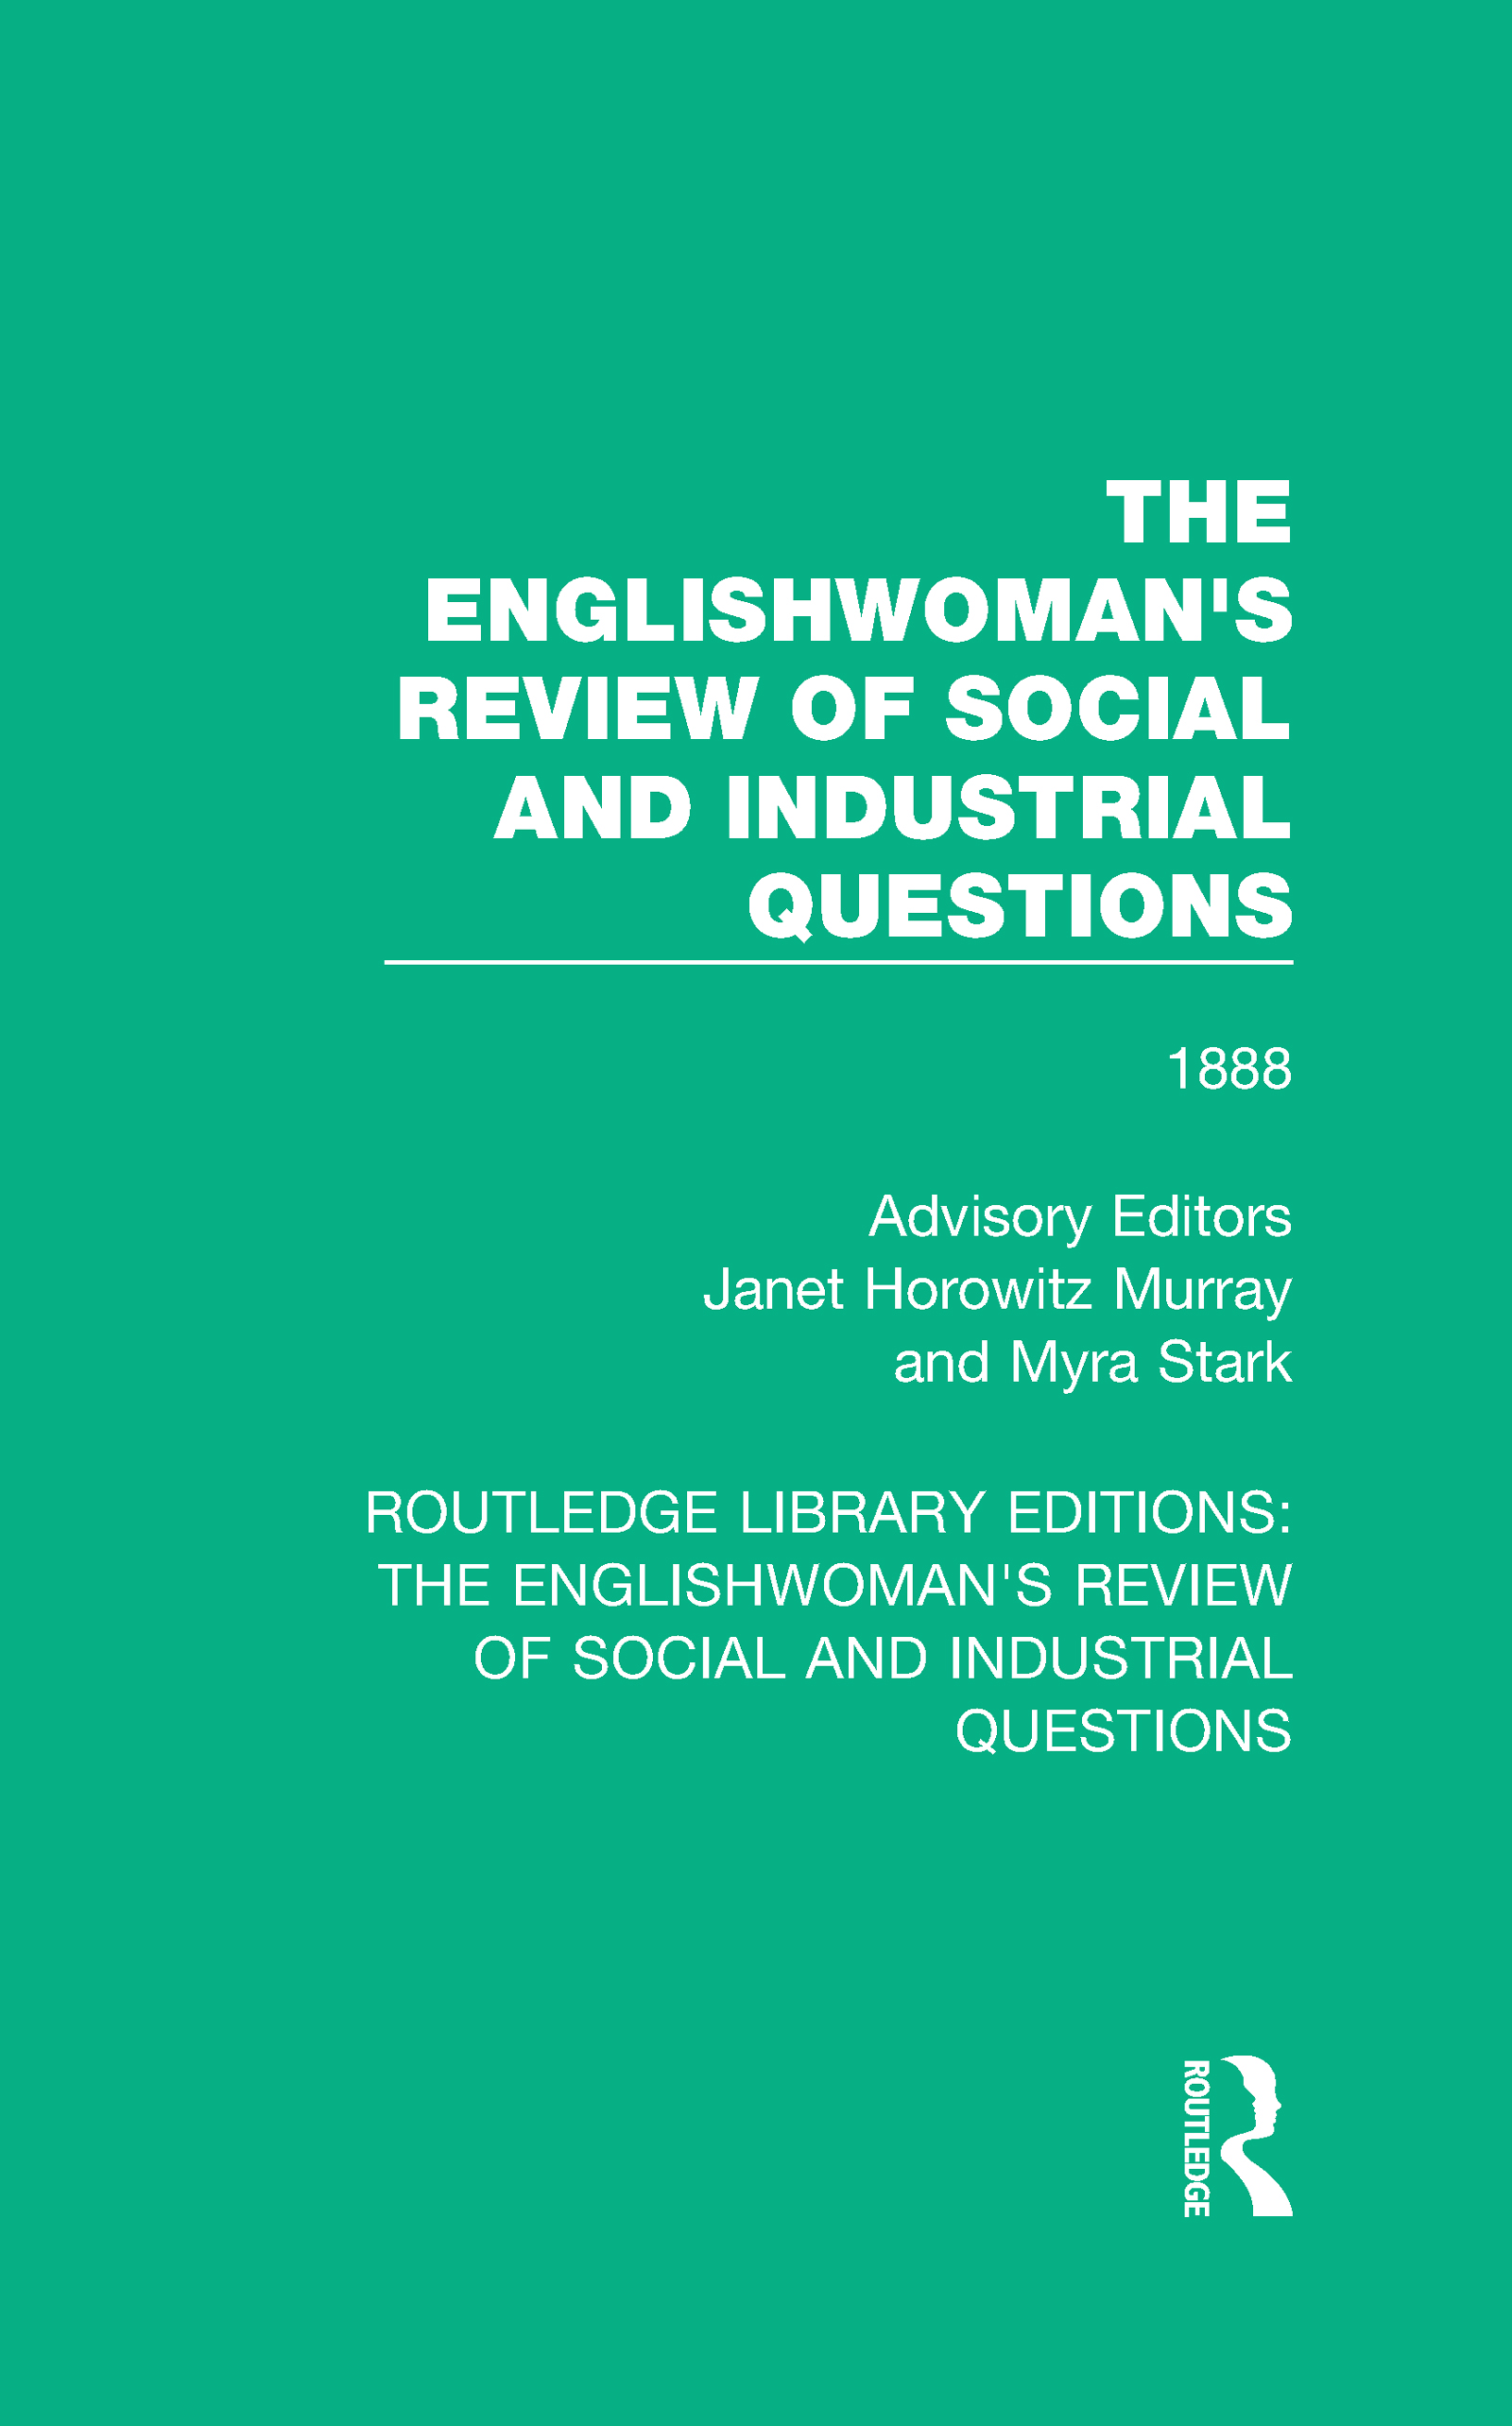 The Englishwoman's Review of Social and Industrial Questions: 1888 book cover